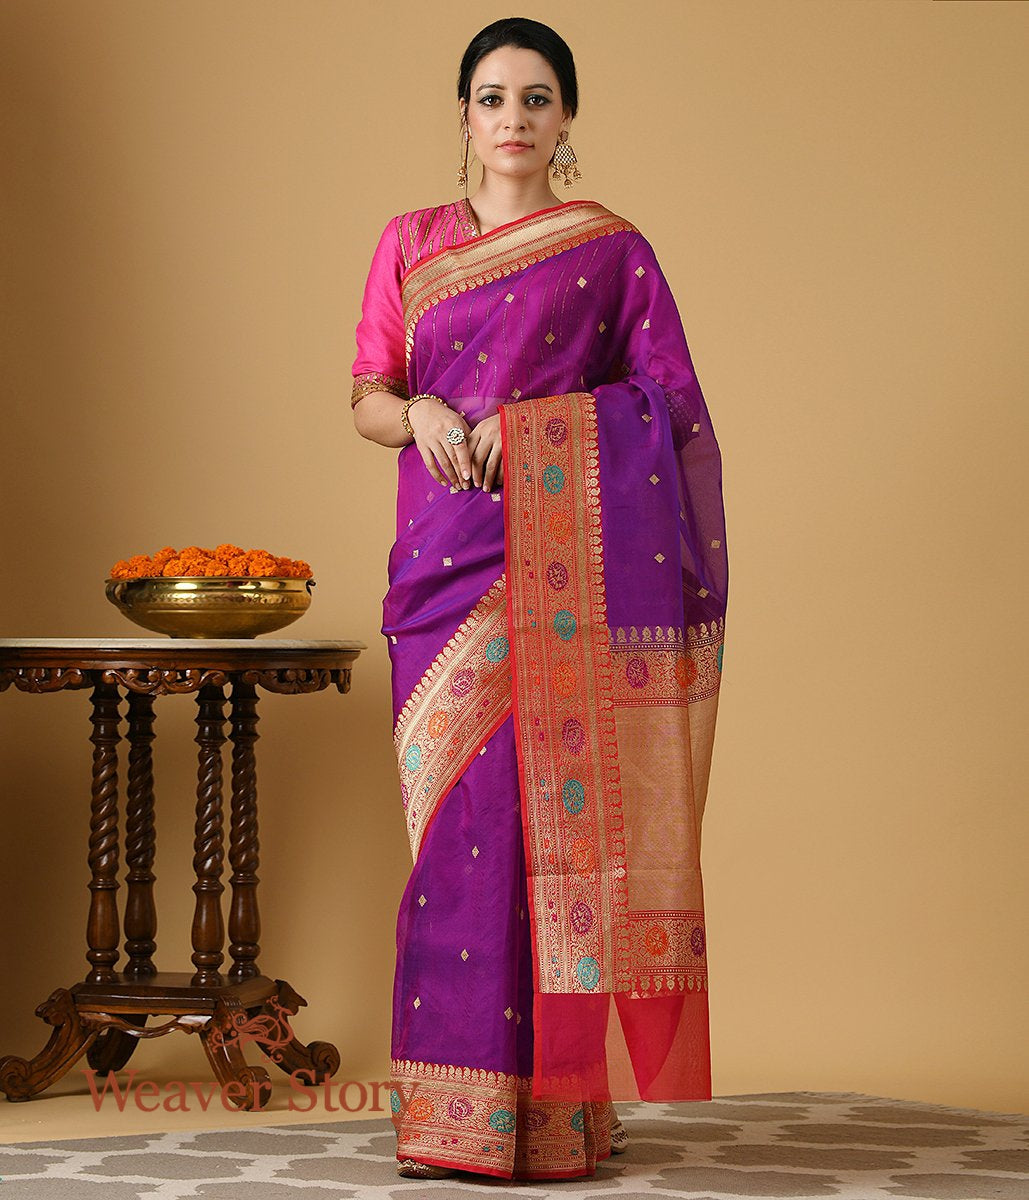 Handwoven Purple and Red Meenakari Border Organza Saree